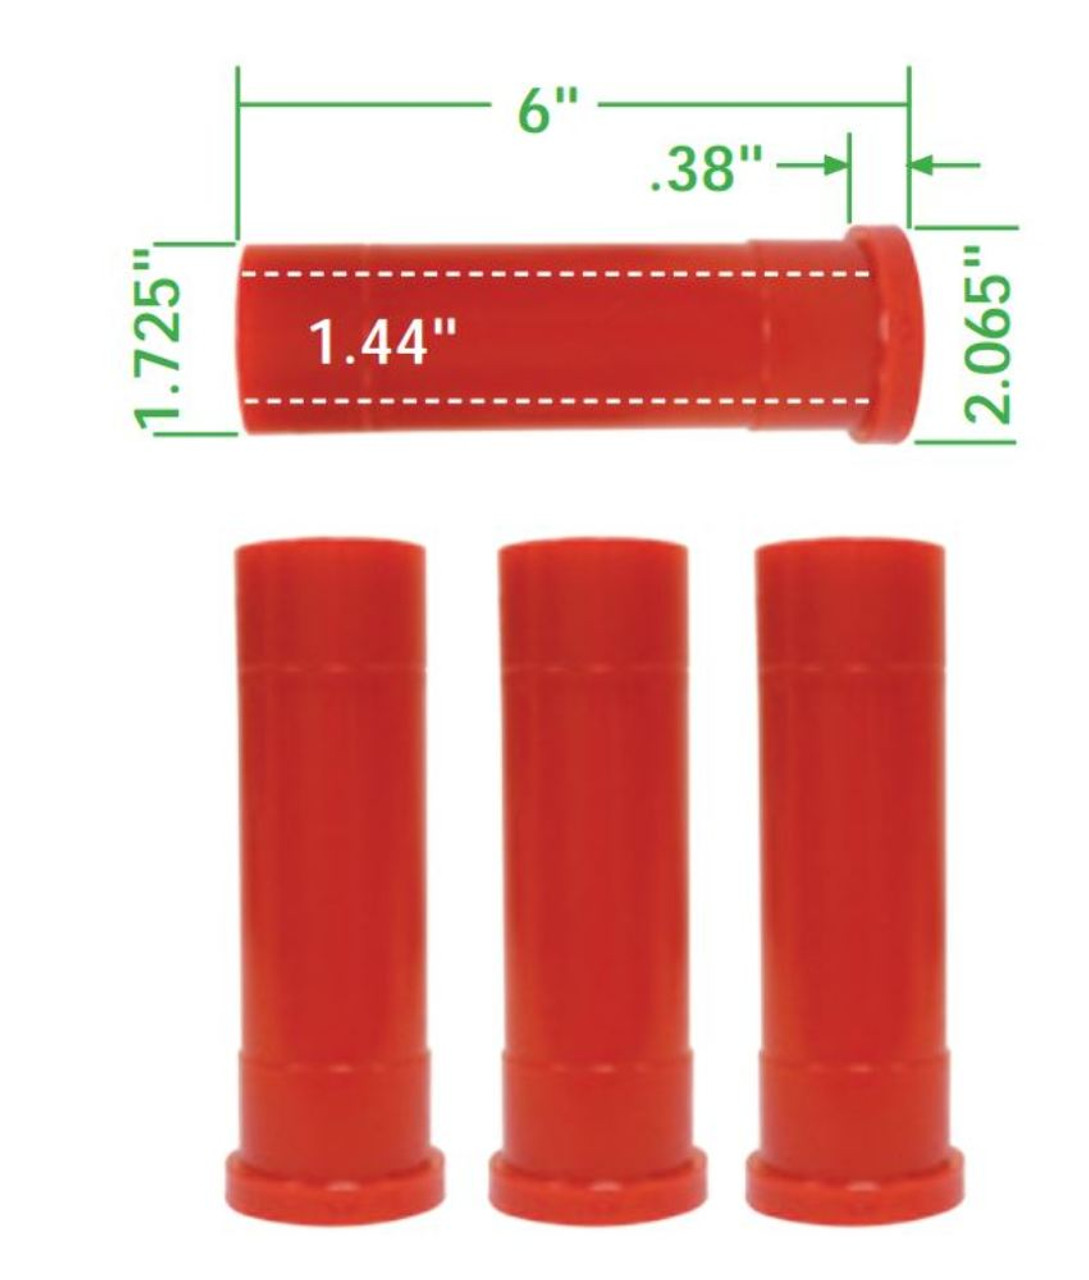 Axle Beam Bushings, 4pc, Urethane, King Pin Style Warrior, Fits VW Off-Road Axle Beams, EMPI 16-5146